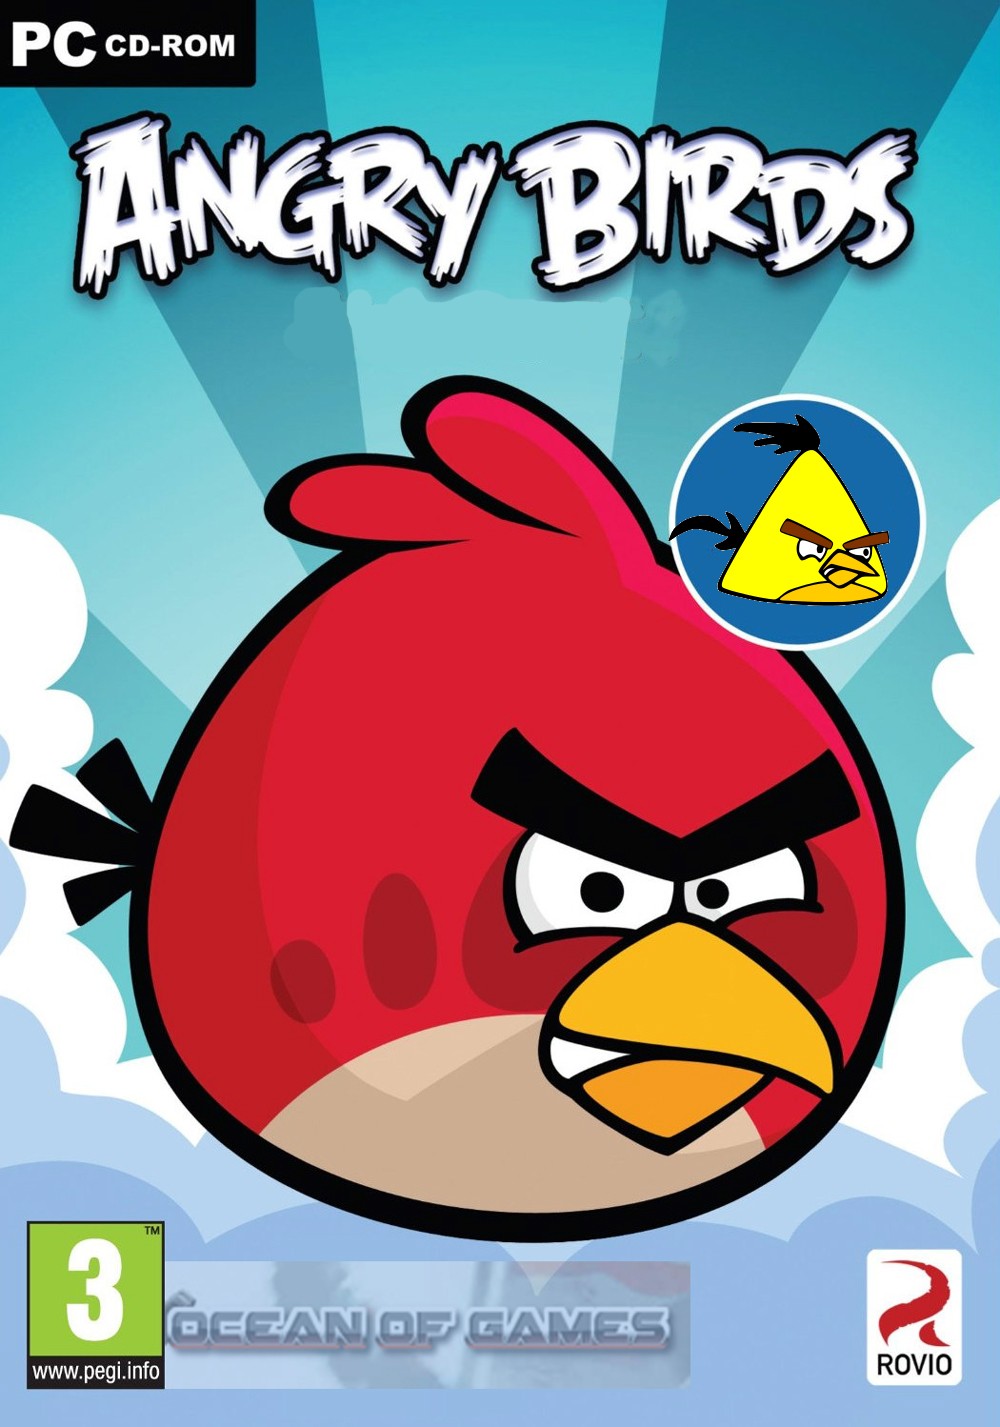 download free game pc angry birds